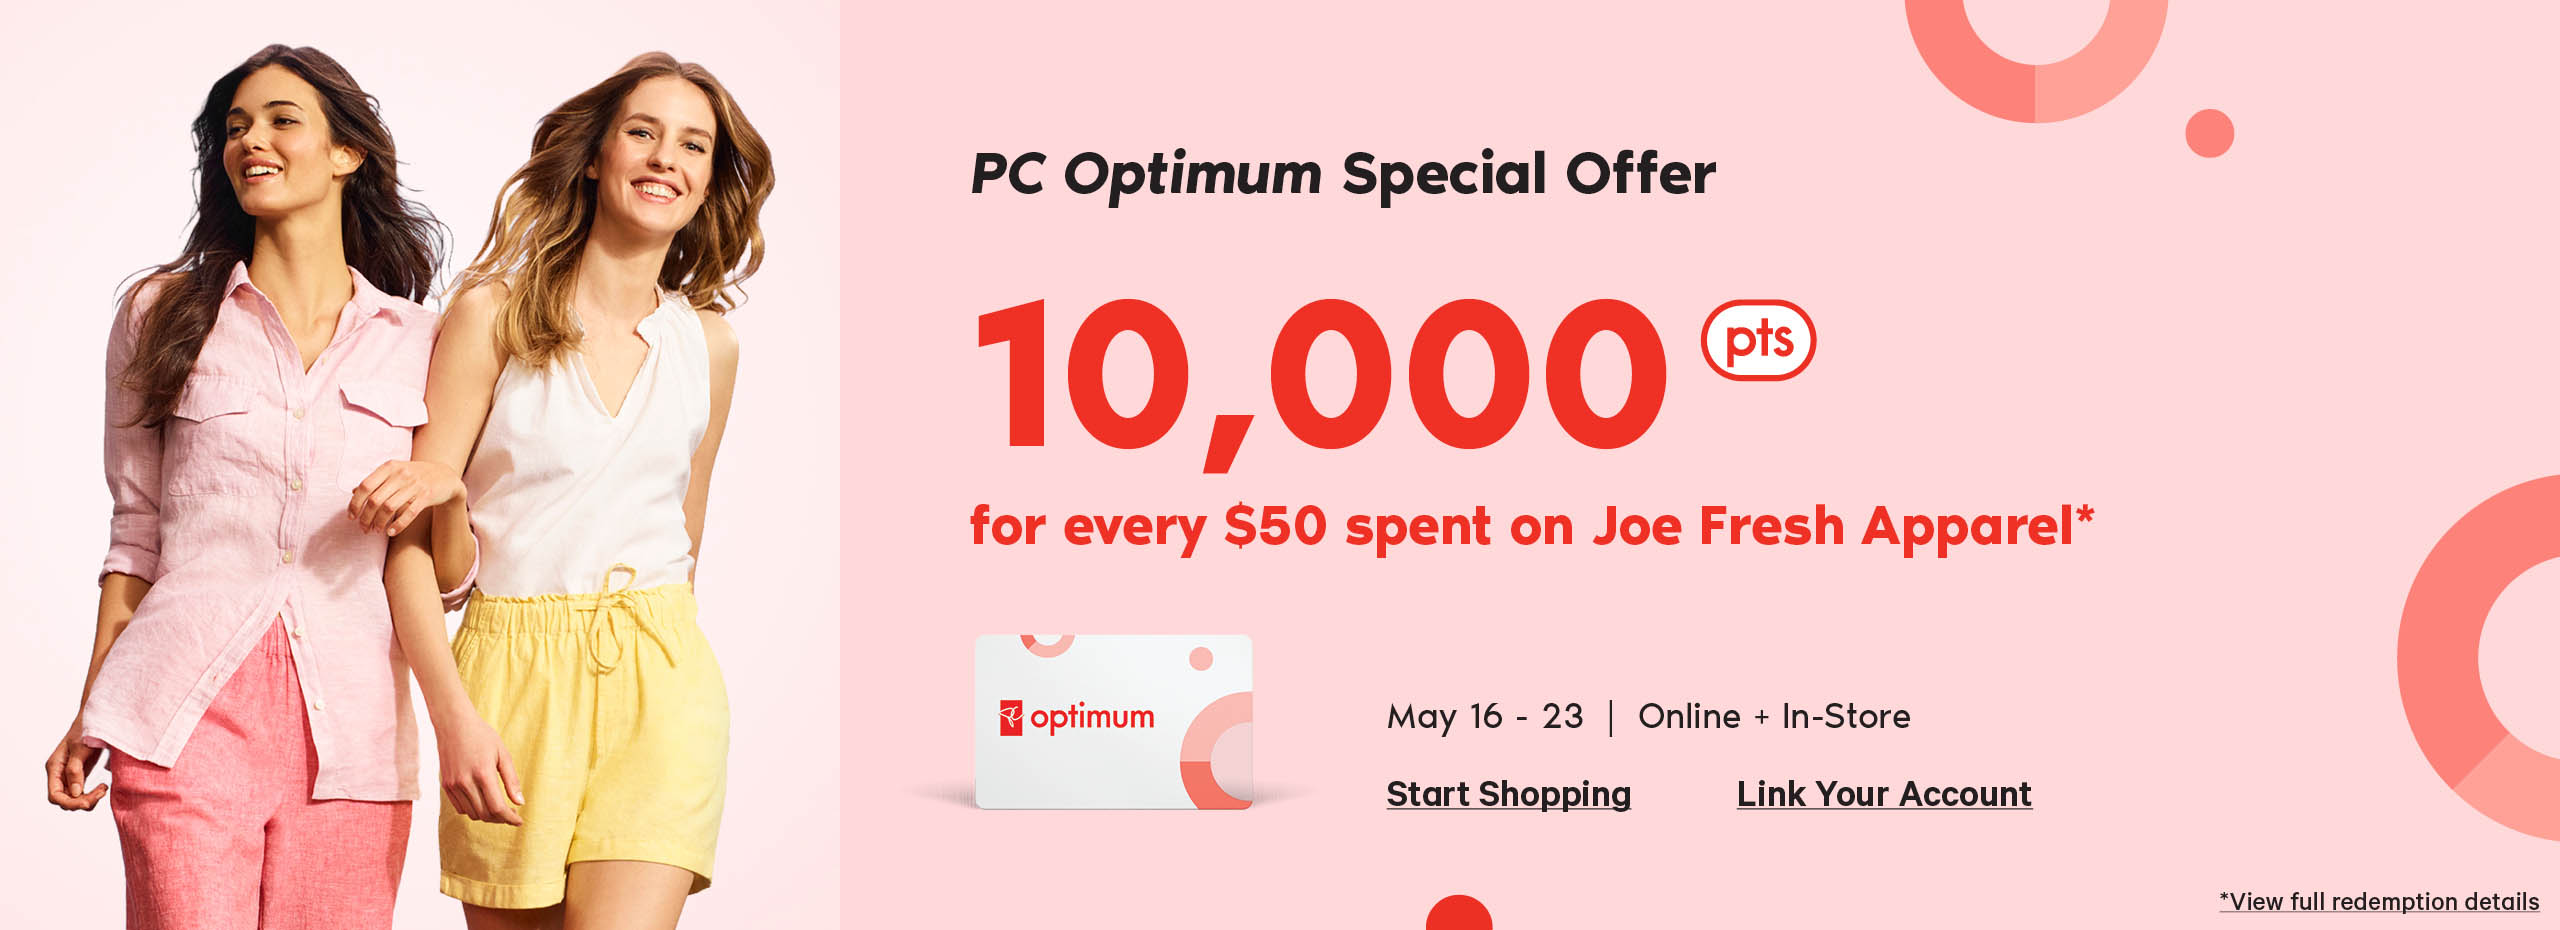 673eff86497 Ten thousand PC Optimum points every 50 dollars you spend